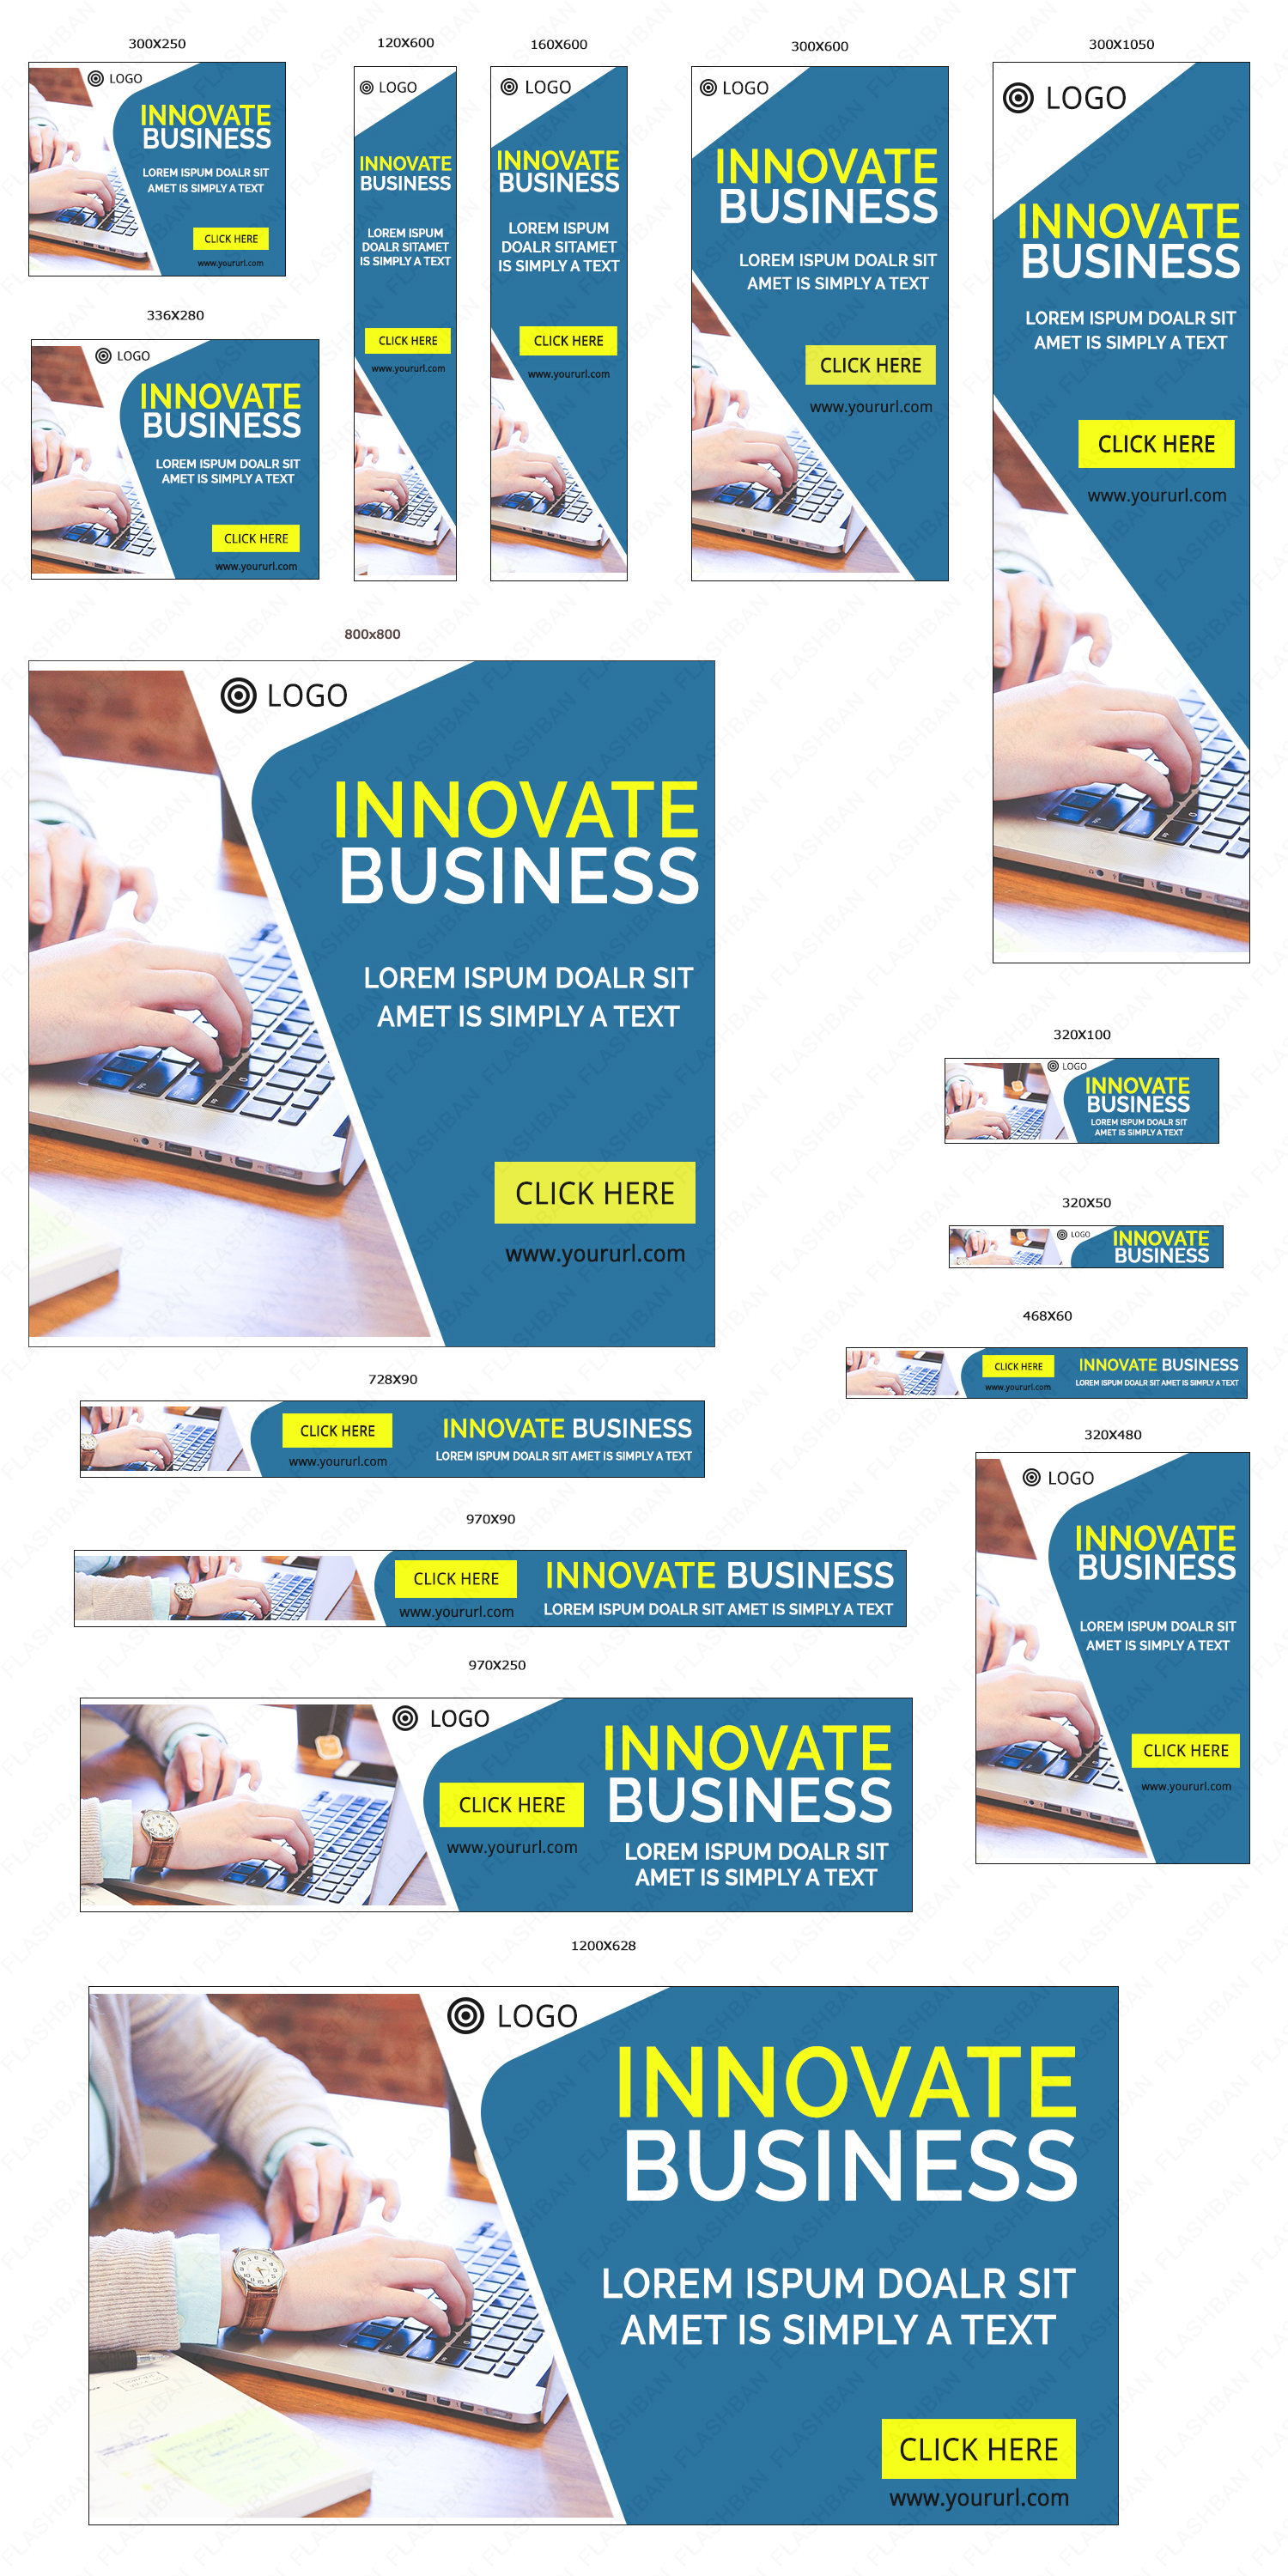 Innovative Business Ad Banner